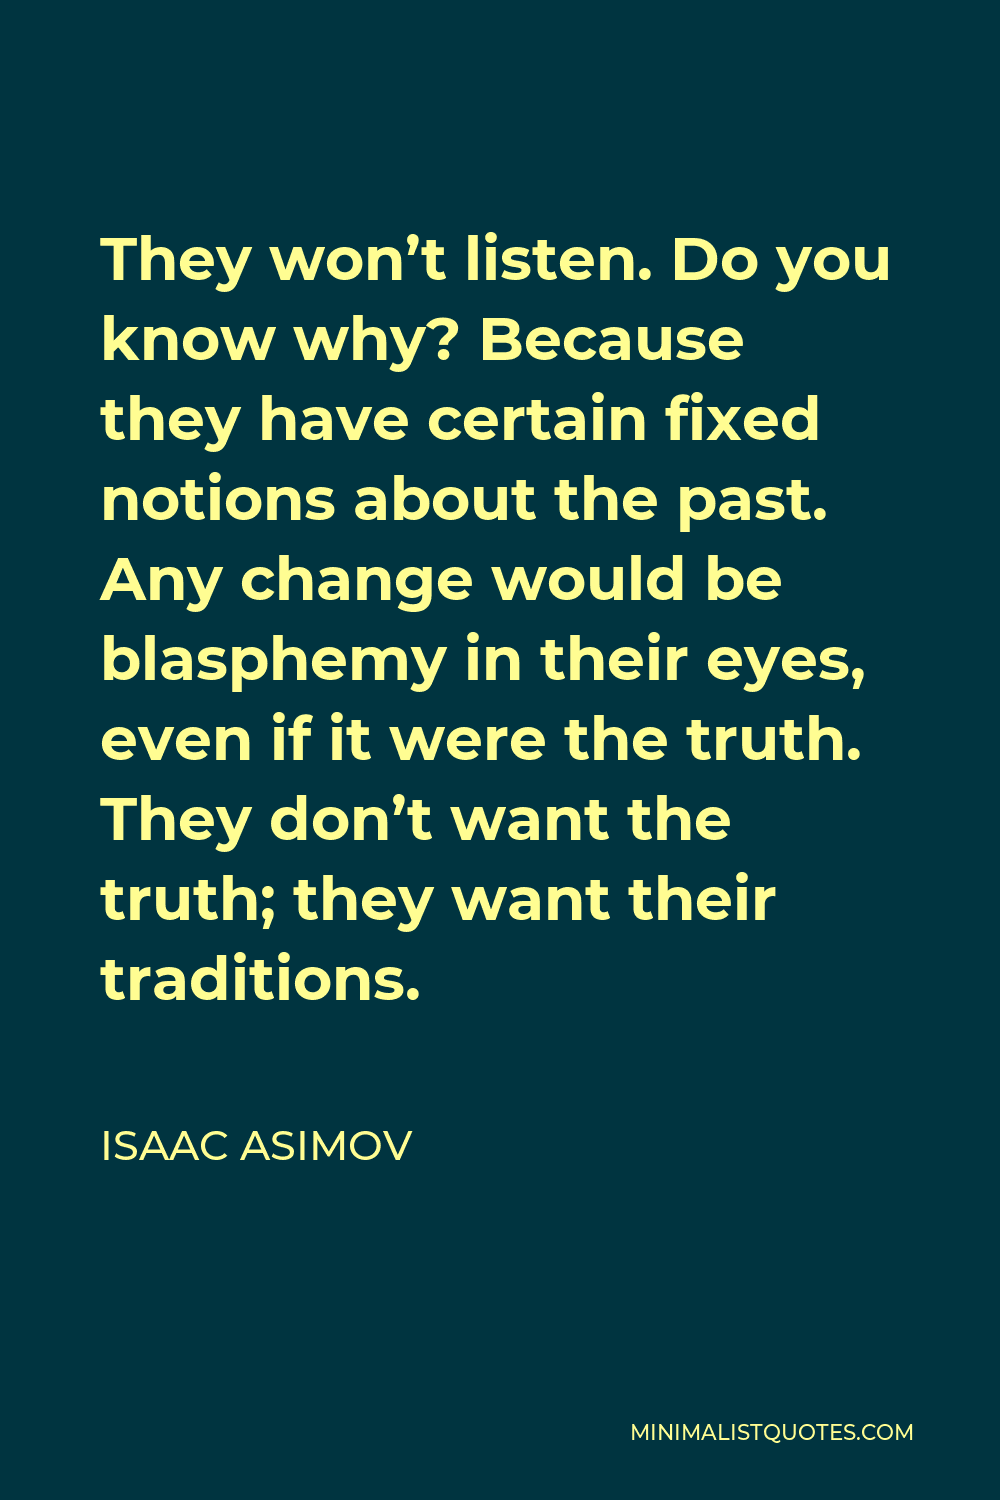 Isaac Asimov Quote - They won't listen. Do you know why? Because they have certain fixed notions about the past. Any change would be blasphemy in their eyes, even if it were the truth. They don't want the truth; they want their traditions.